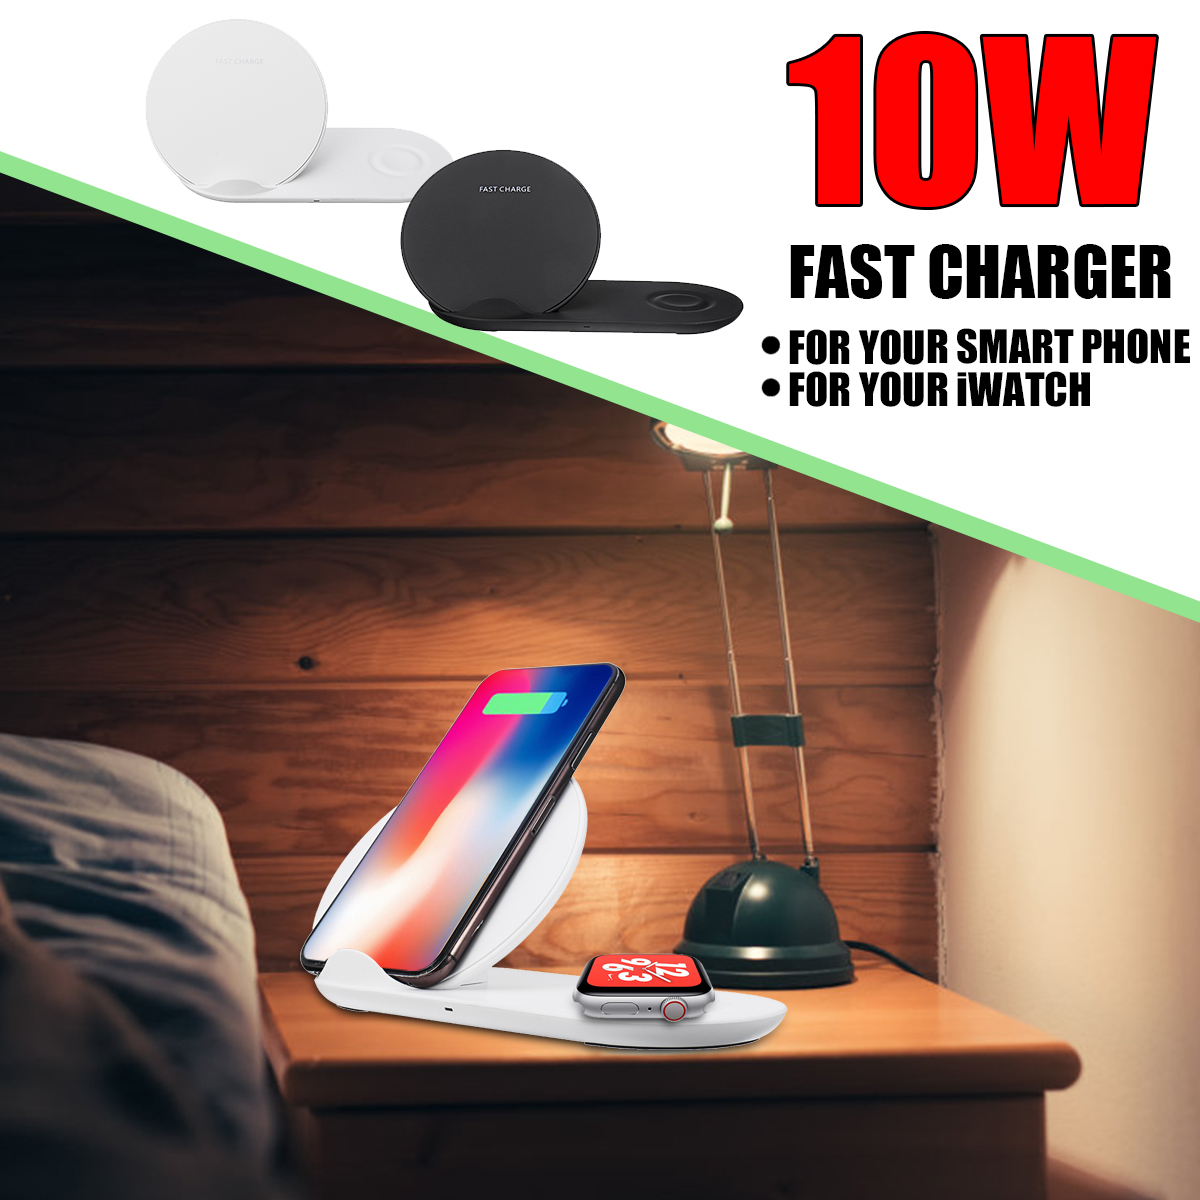 2 In 1 Qi Wireless Charger Phone Charger Watch Charger For iPhone/Samsung/Apple Watch Series